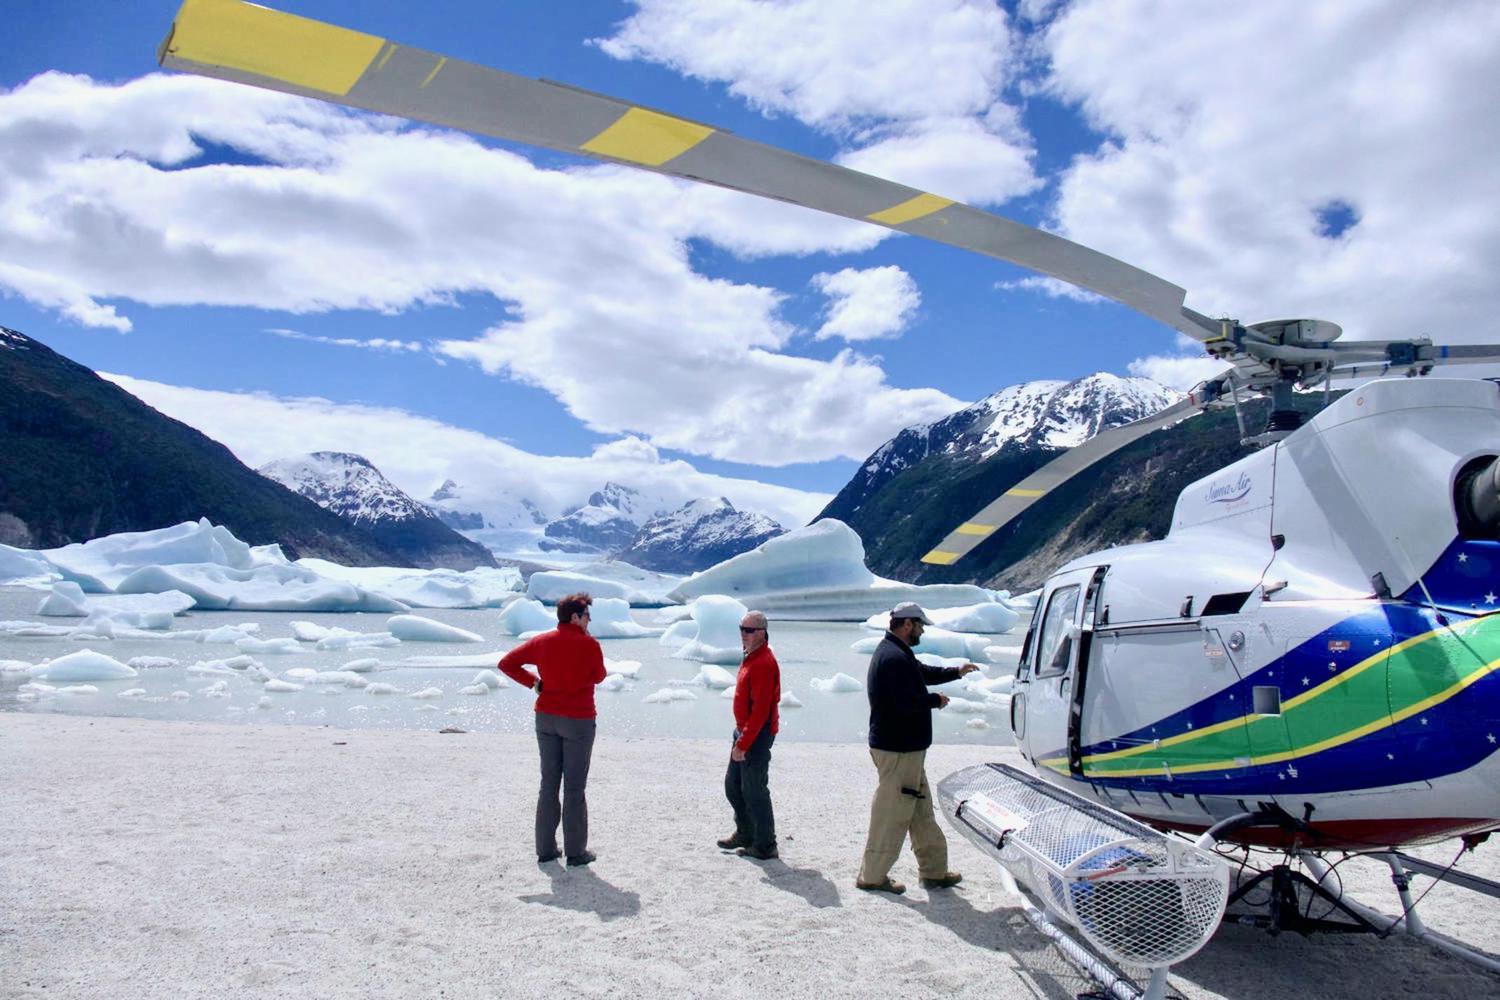 chile-patagonia-carretera-austral-neff-glacier-helicopter-on-beach.jpg